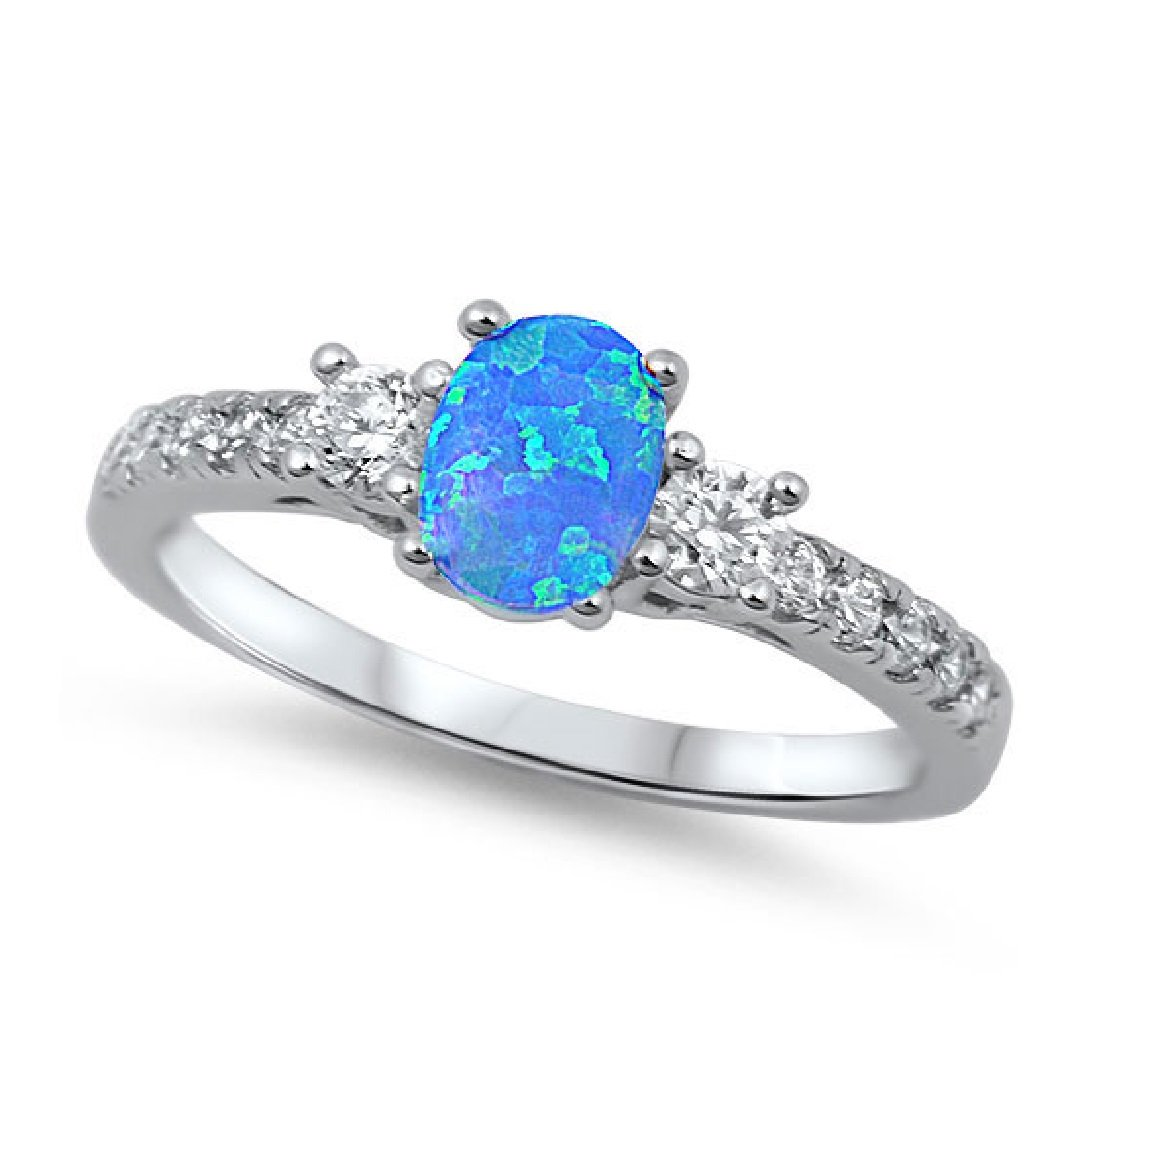 CloseoutWarehouse Oval Center Blue Simulated Opal Ring 925 Sterling Silver Size 5